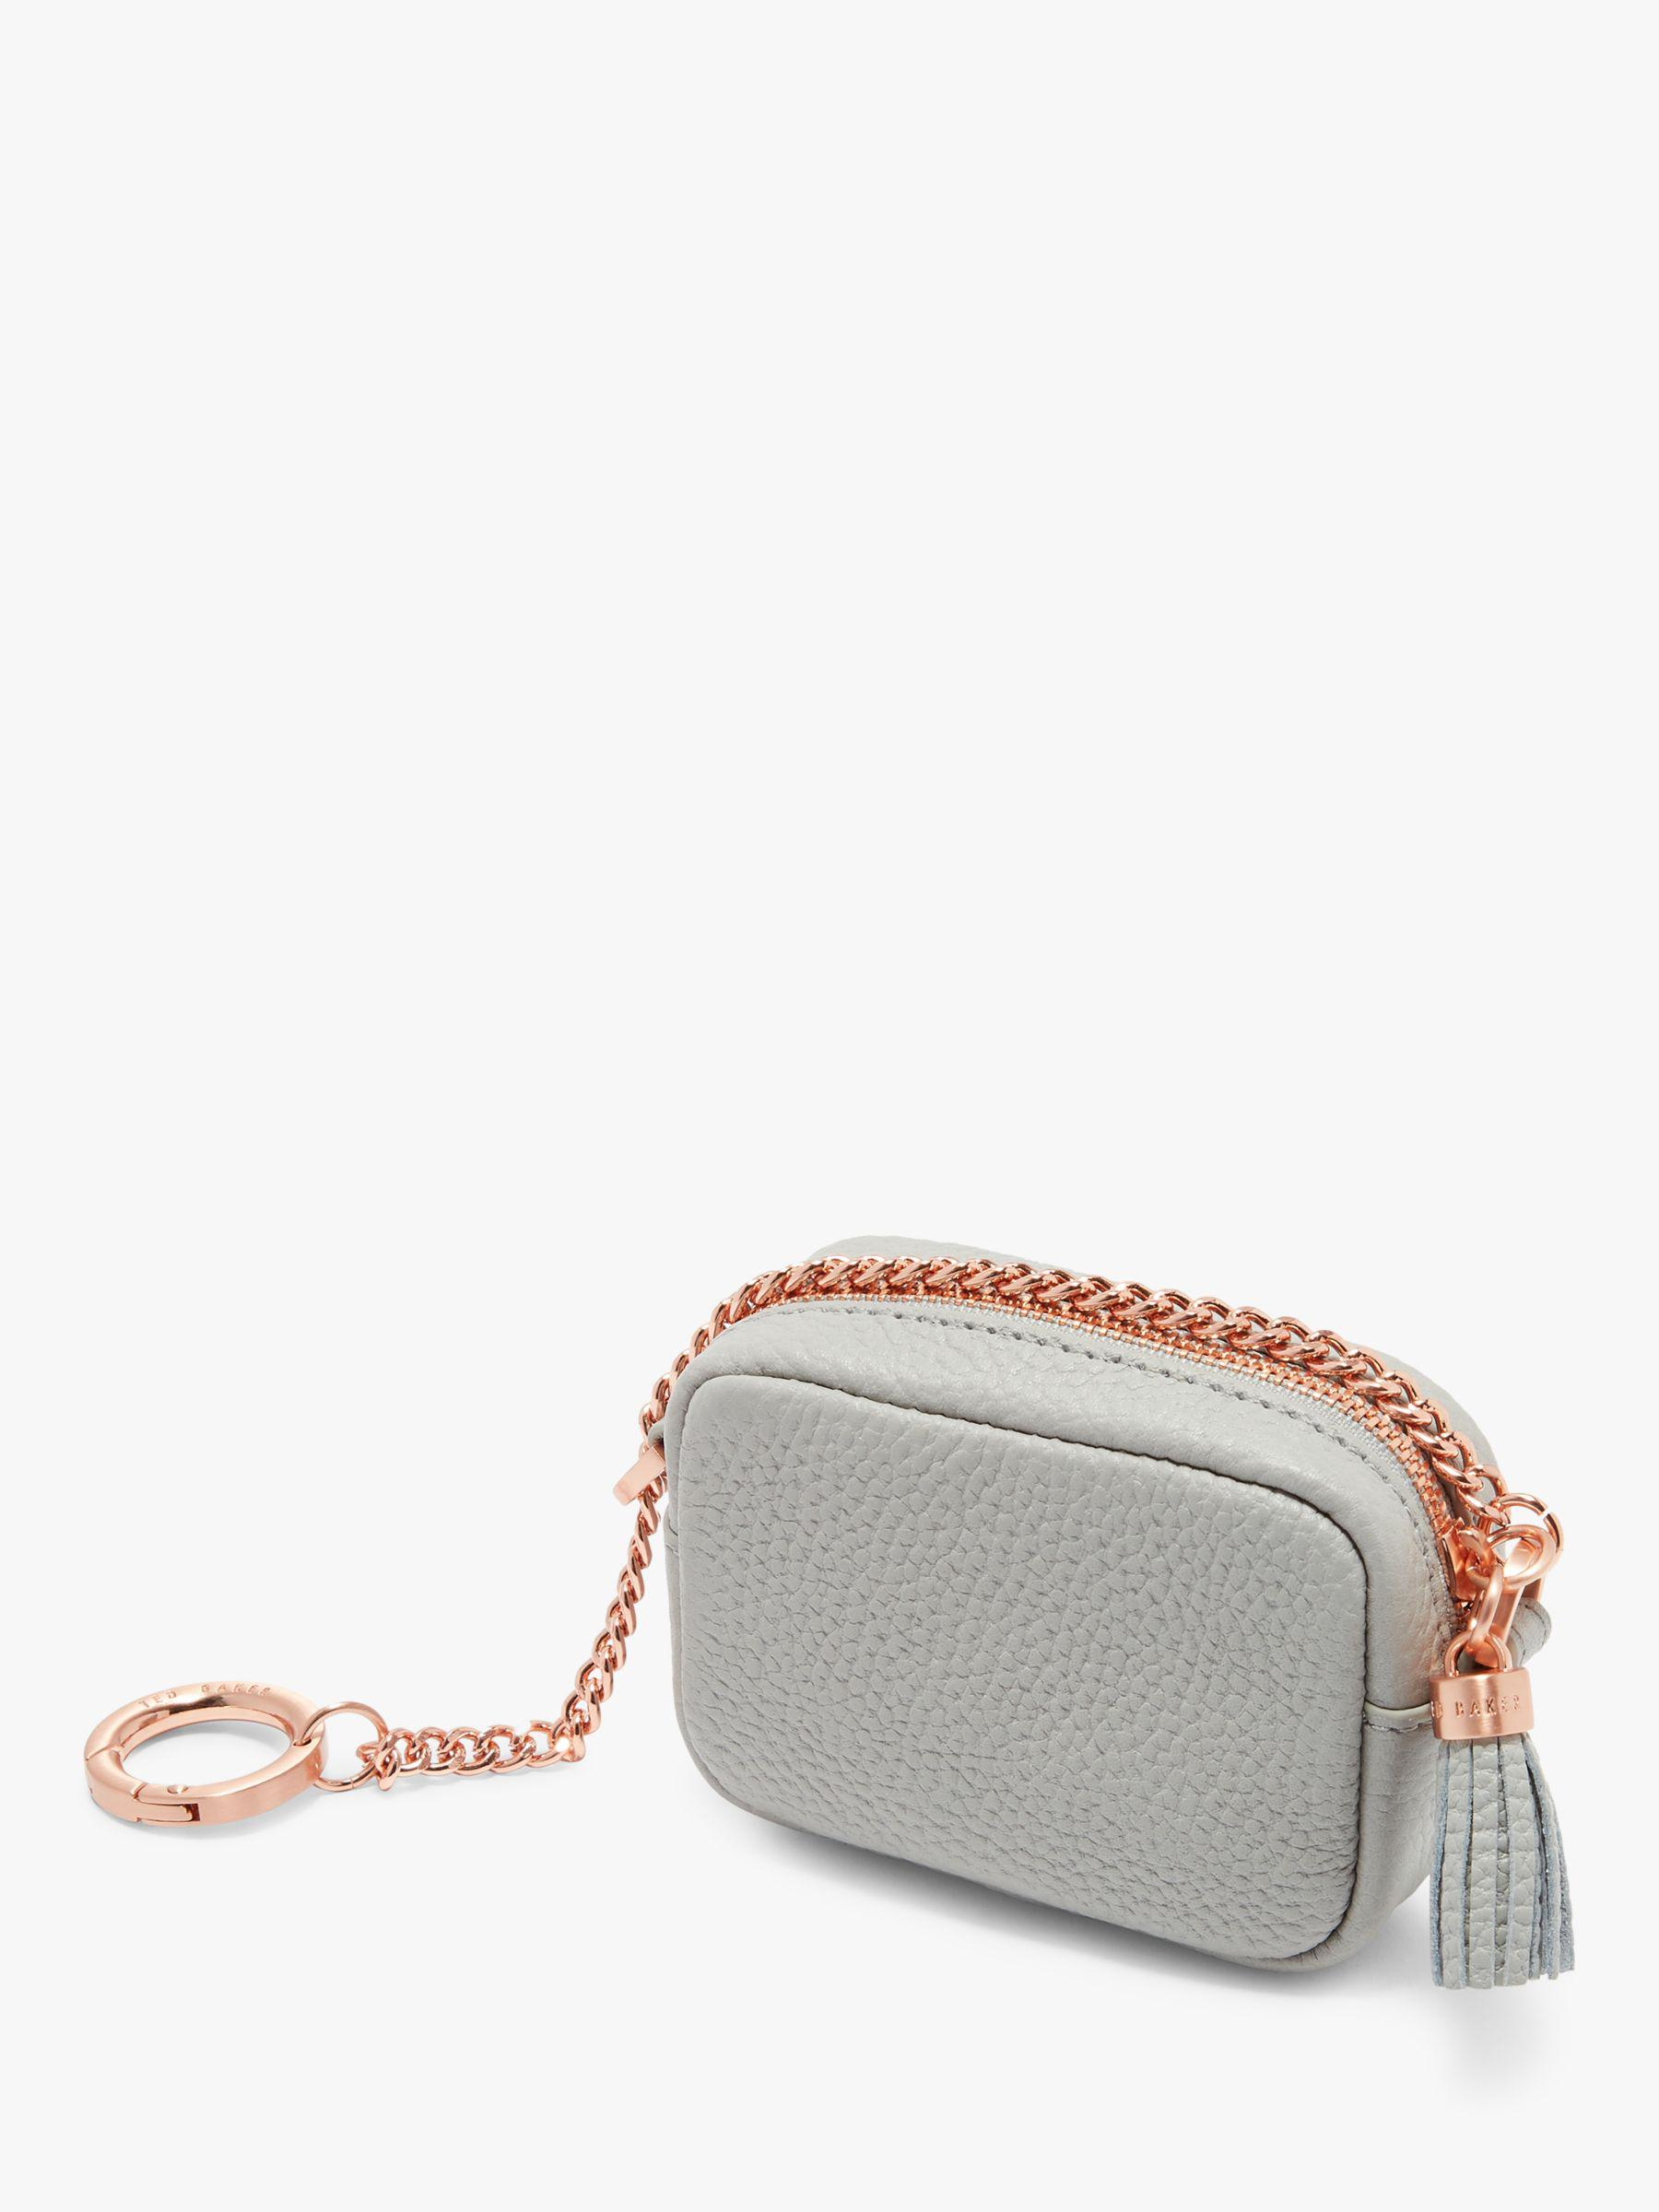 c229873c43 Ted Baker Mmorgan Leather Coin Purse Bag Charm in Gray - Lyst